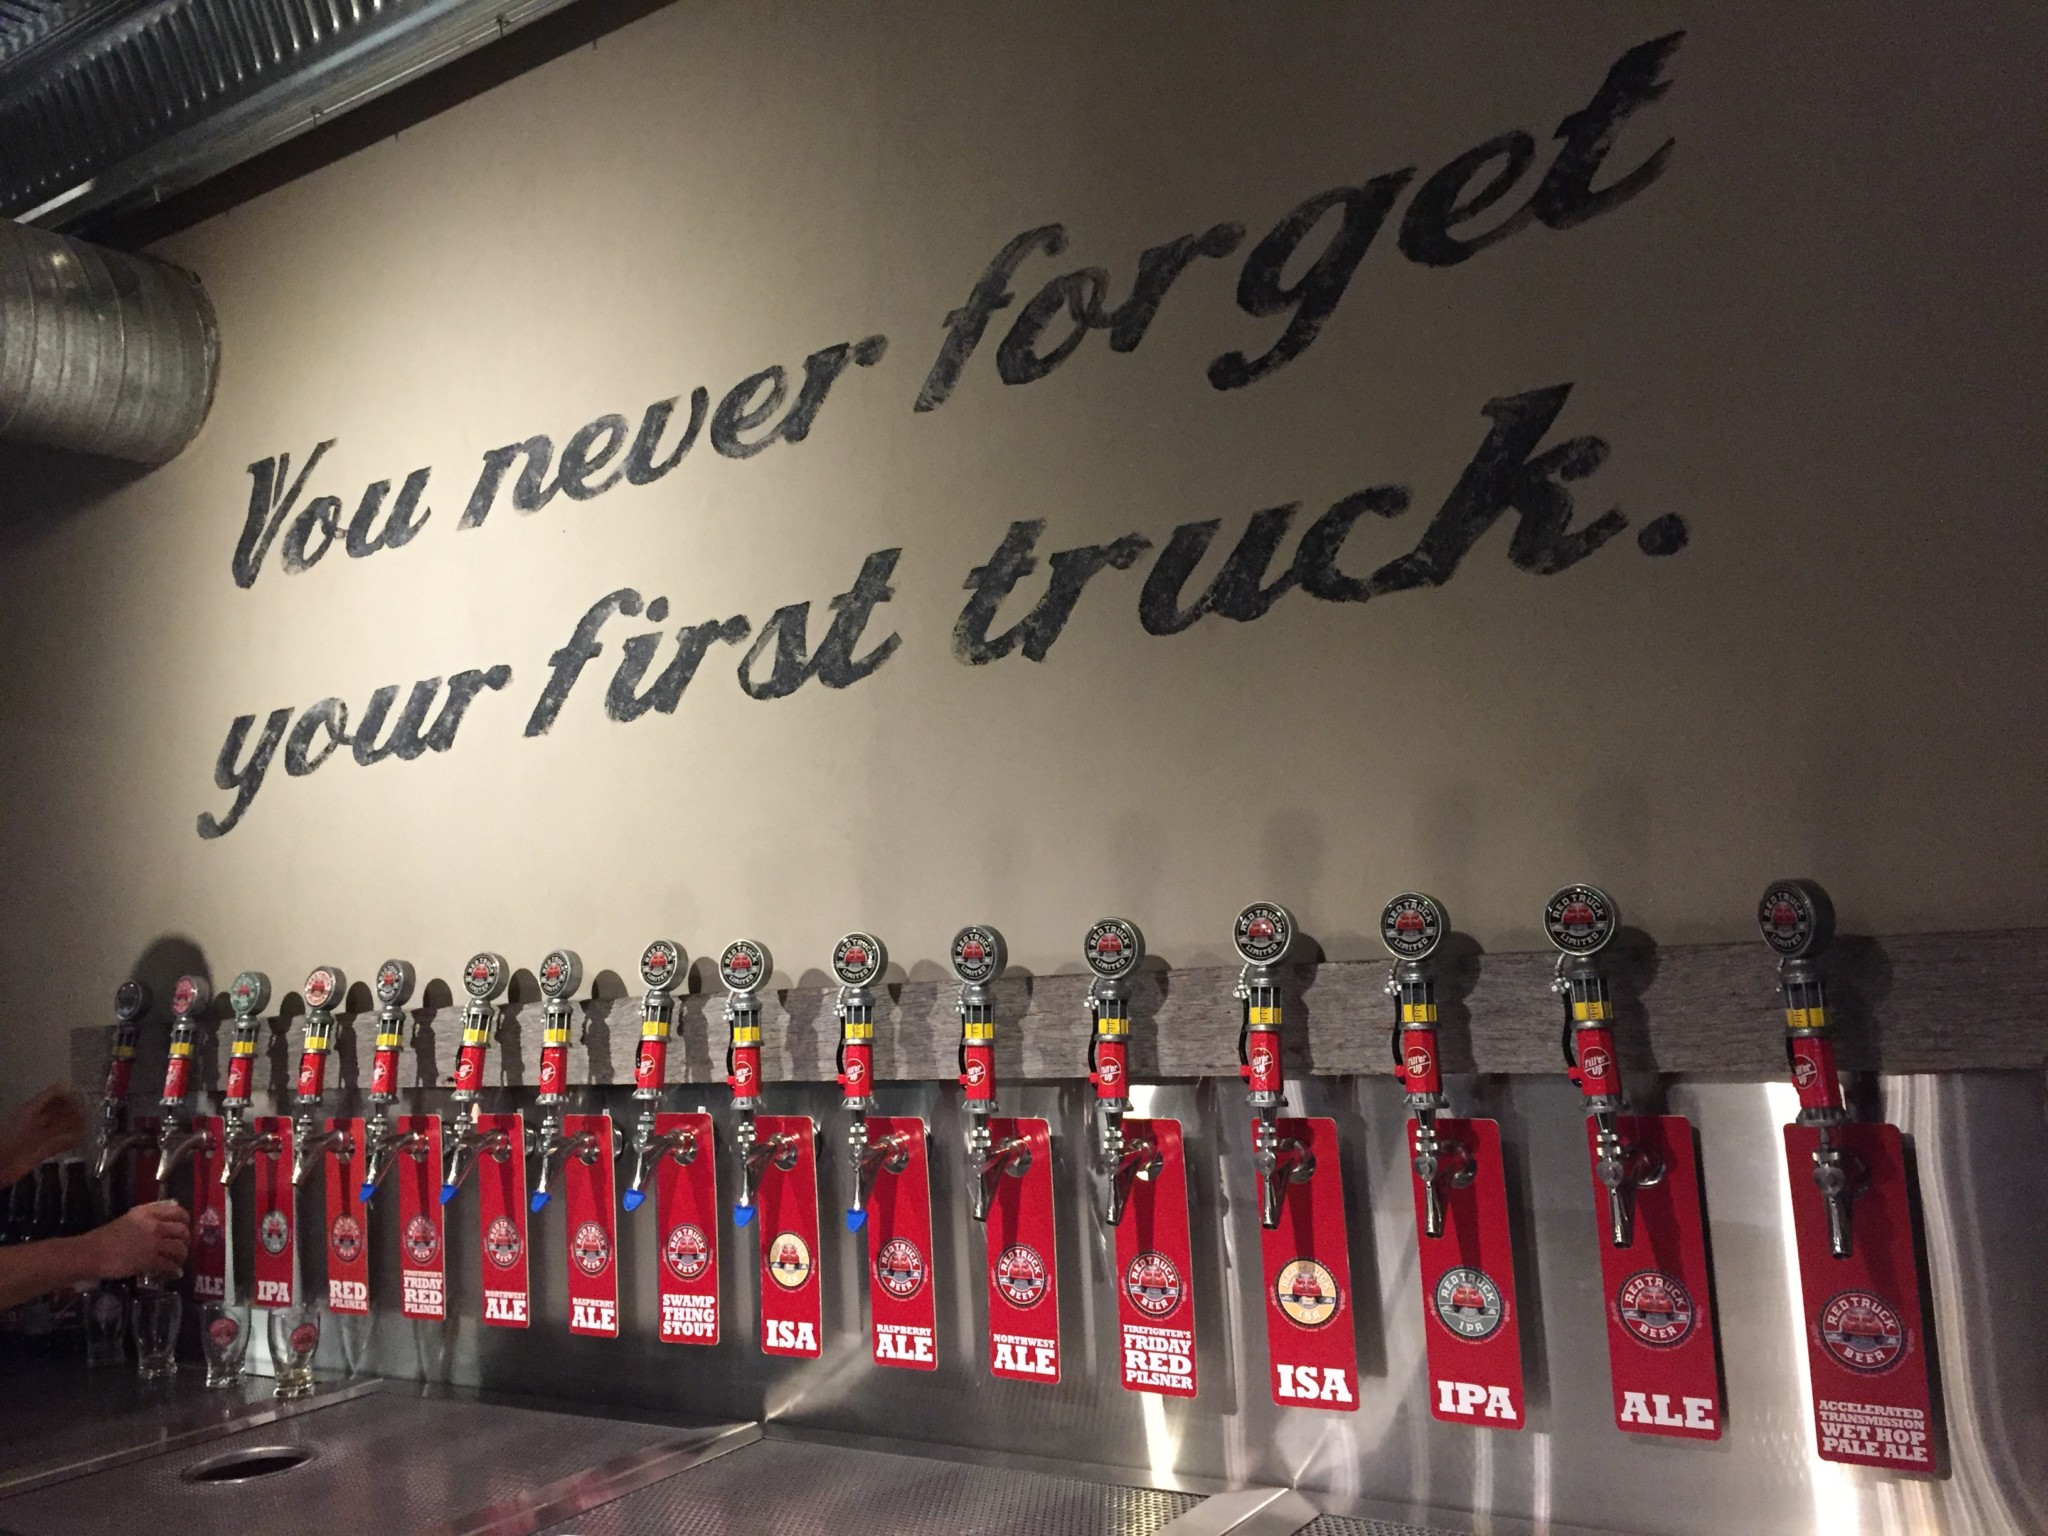 Red Truck Beer Company and the Truck Stop Diner